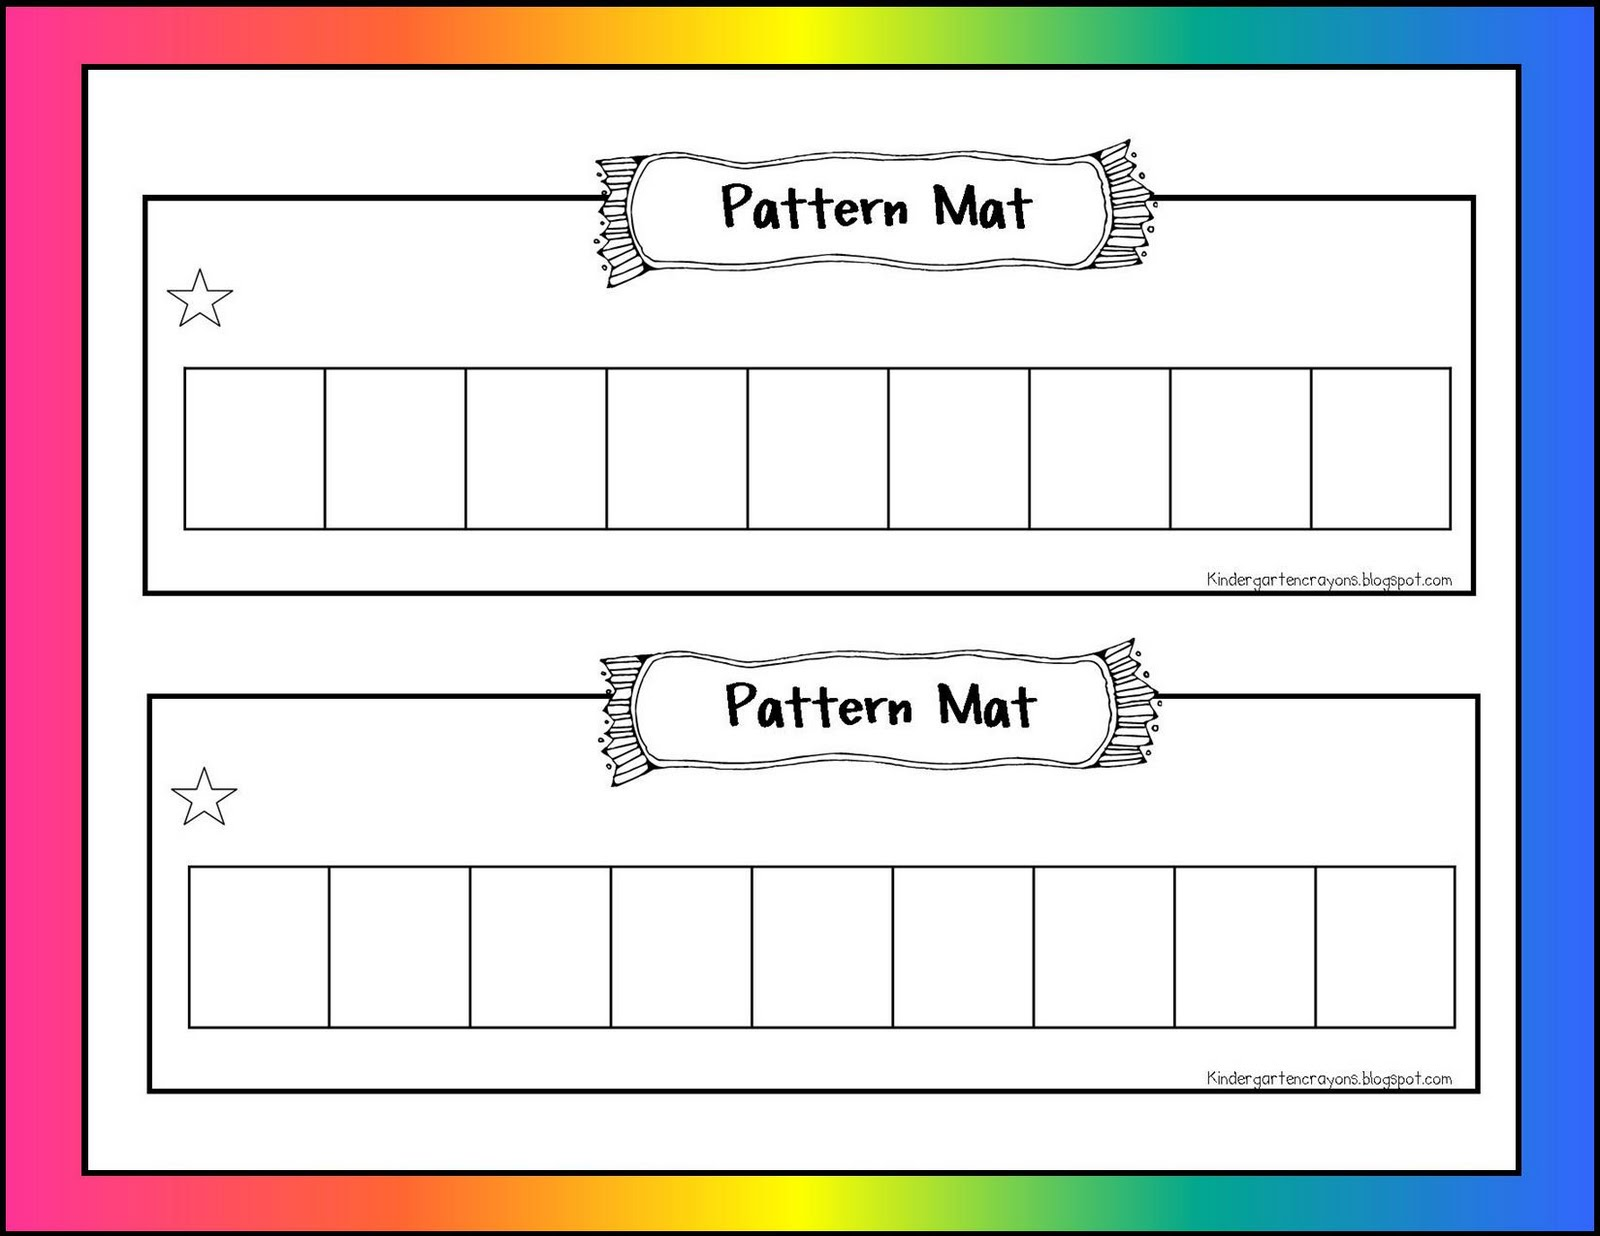 Kindergarten Crayons Math Mats Not For The Front Door